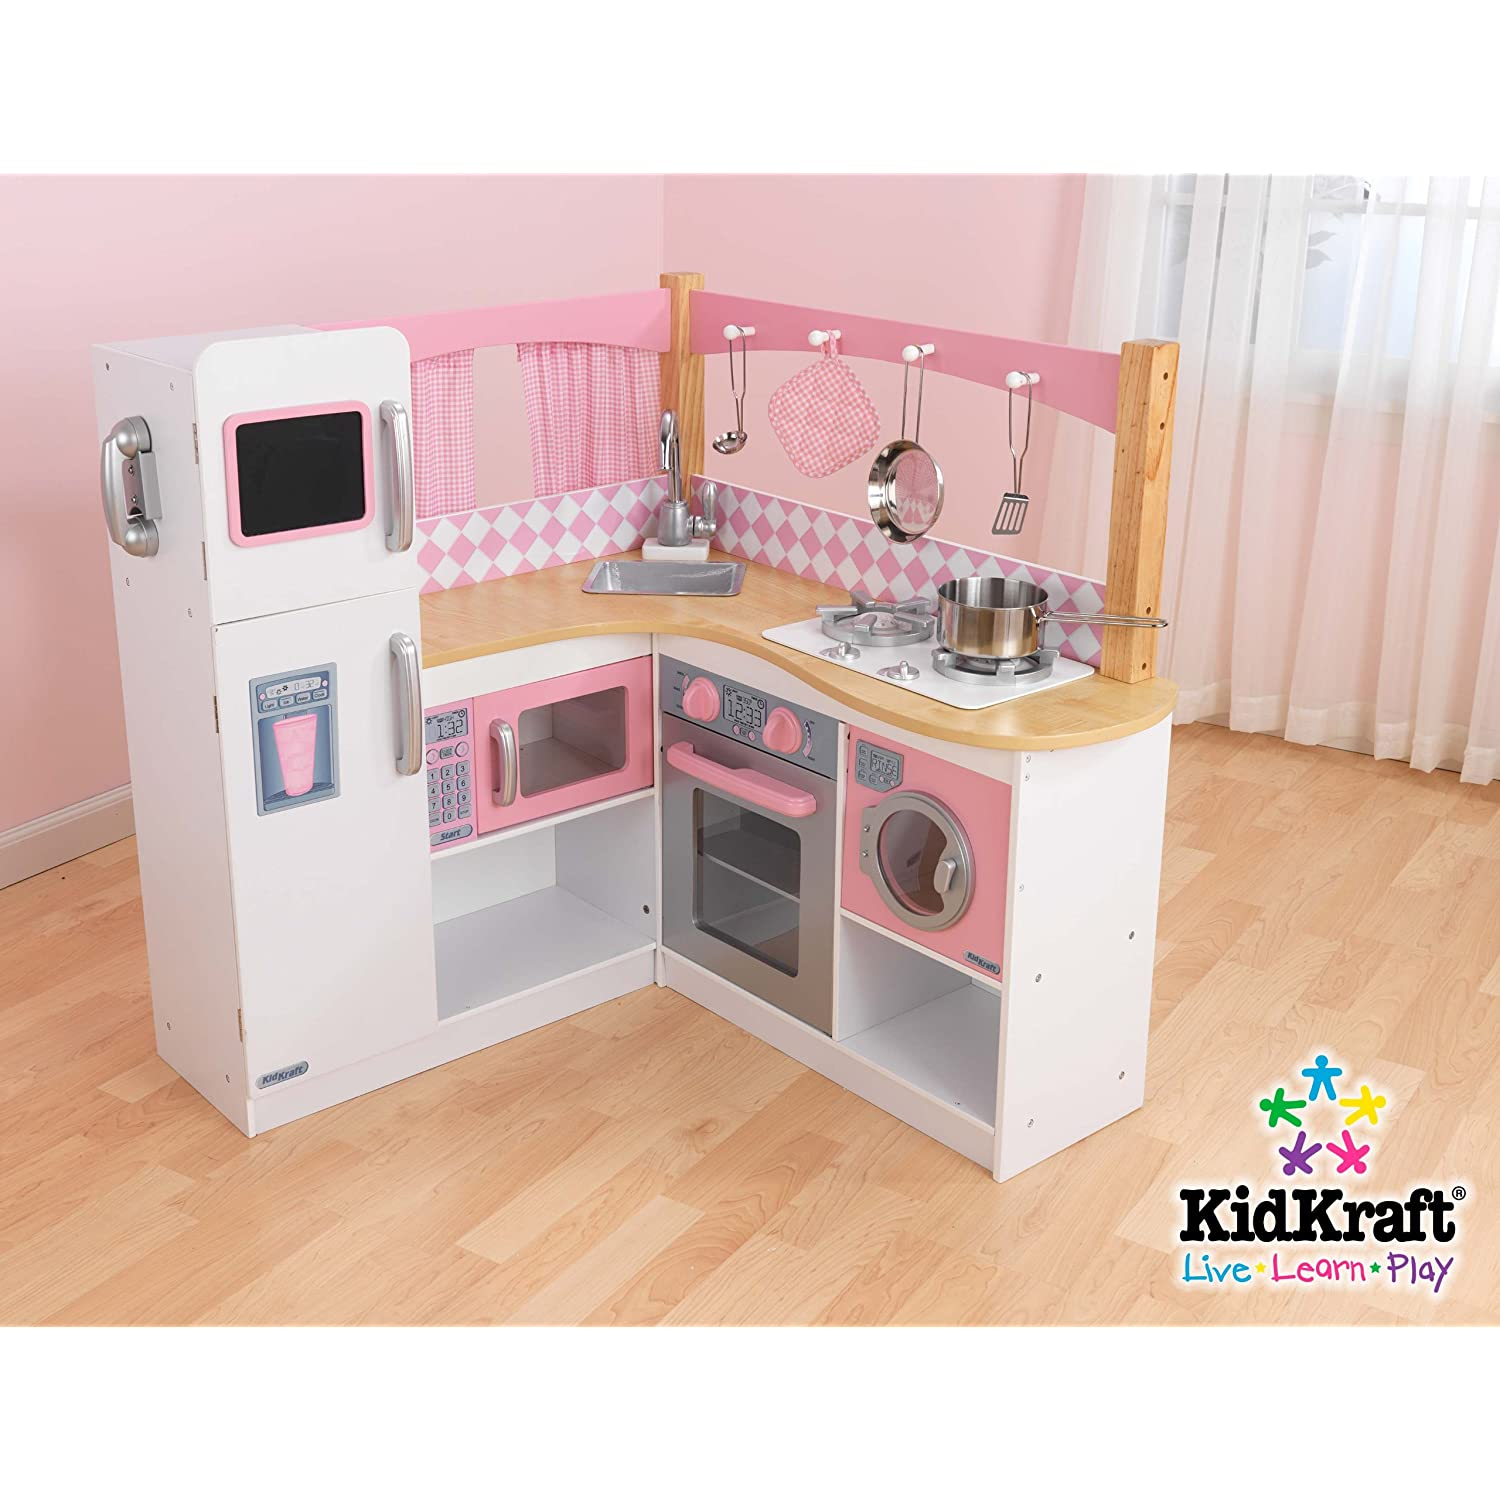 Kidkraft Corner Kitchen: Kidkraft Kids Pretend Play Wood Grand Gourmet Corner Play